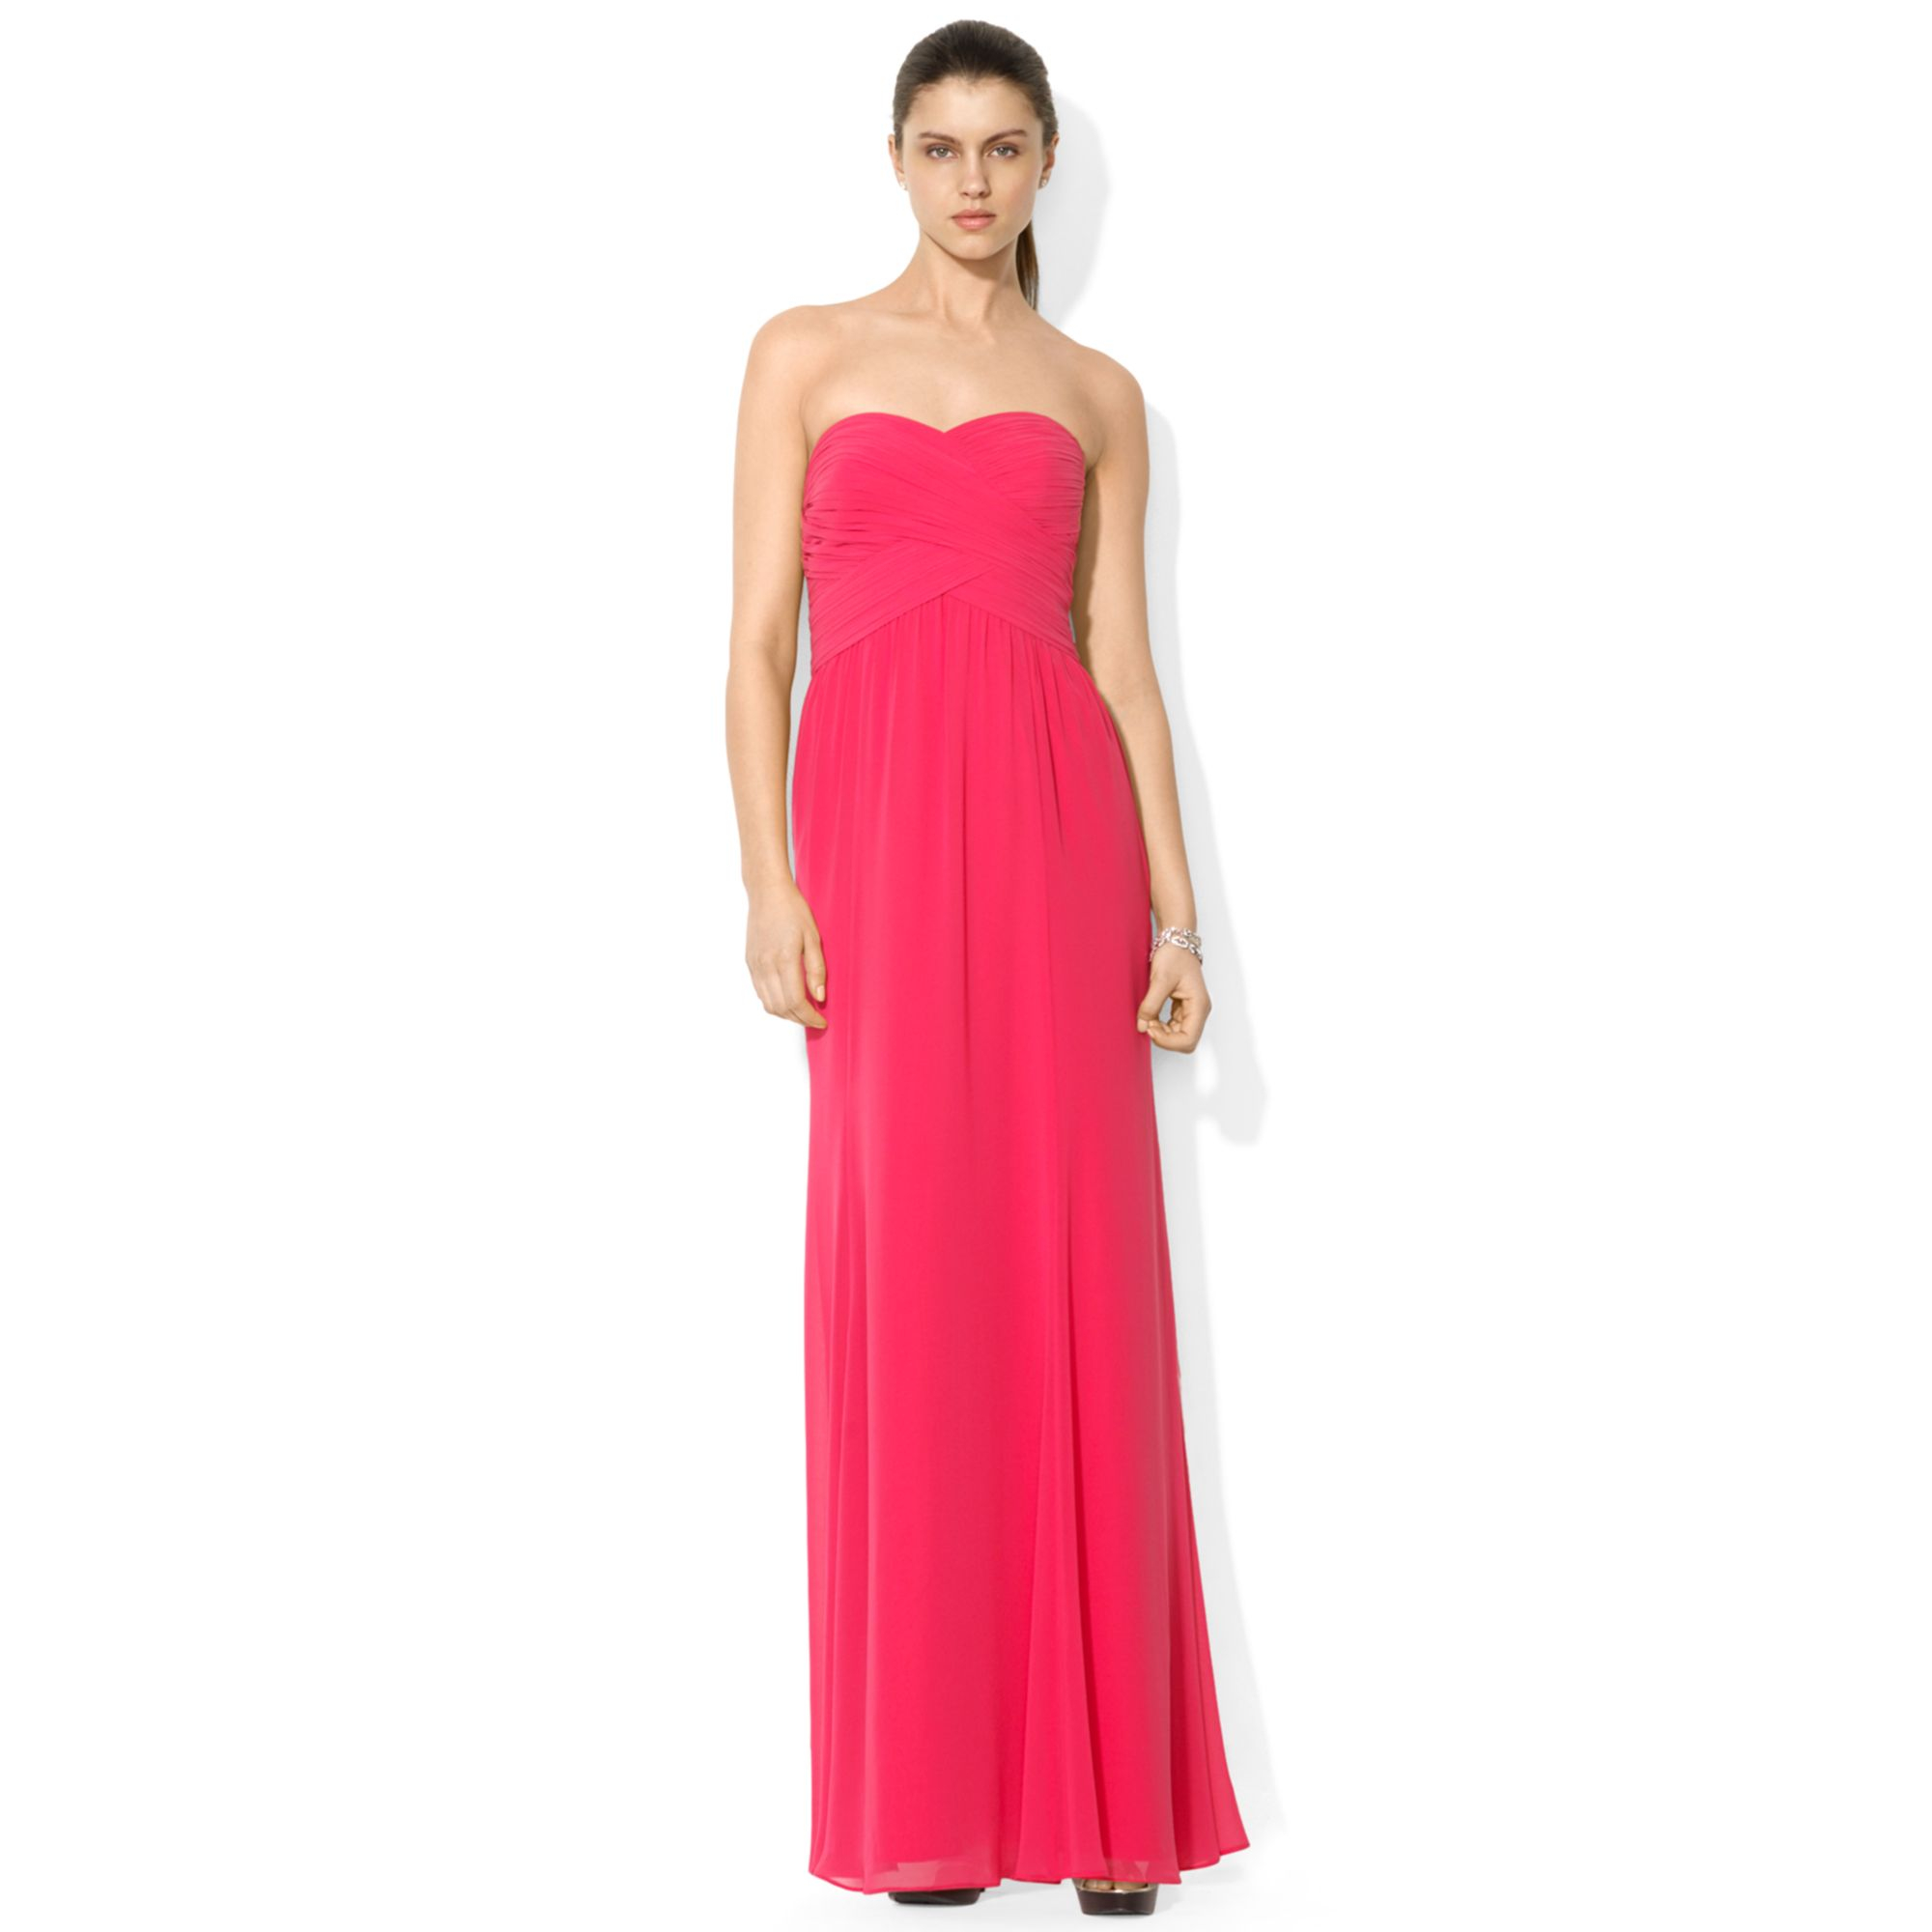 Lauren By Ralph Lauren Strapless Sweetheart Maxi Dress in ...